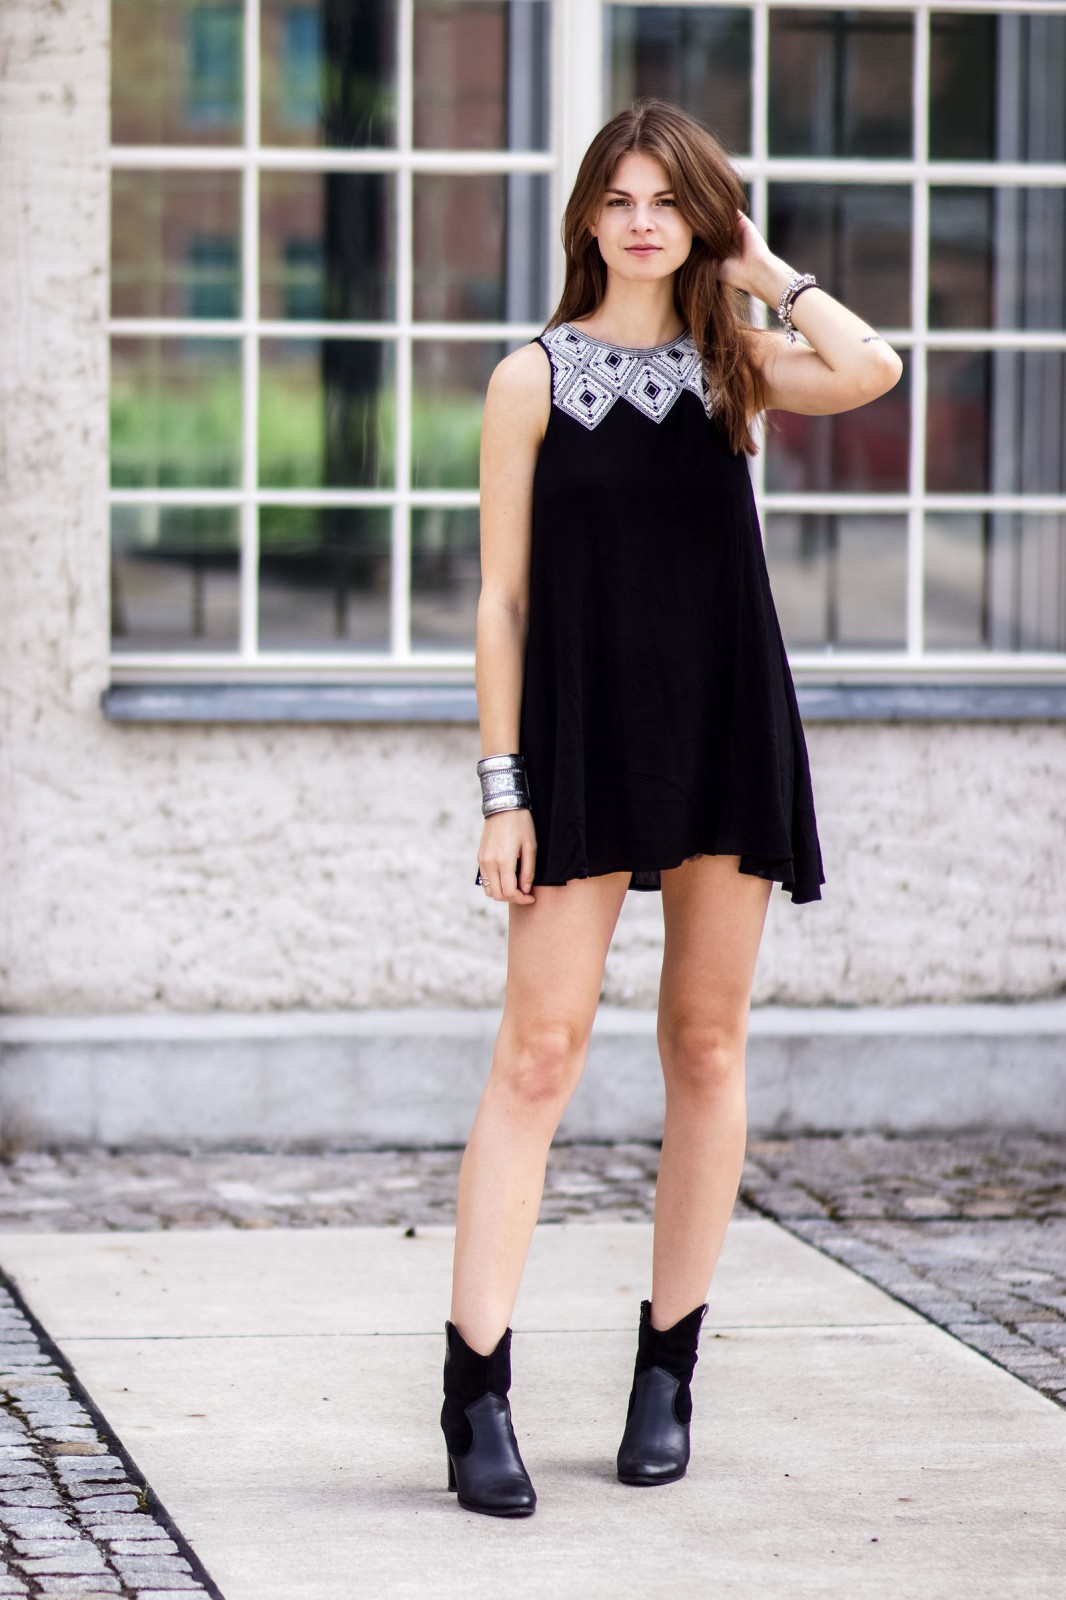 Black dress in summer -  Dress With Embroidery What To Wear In Summer